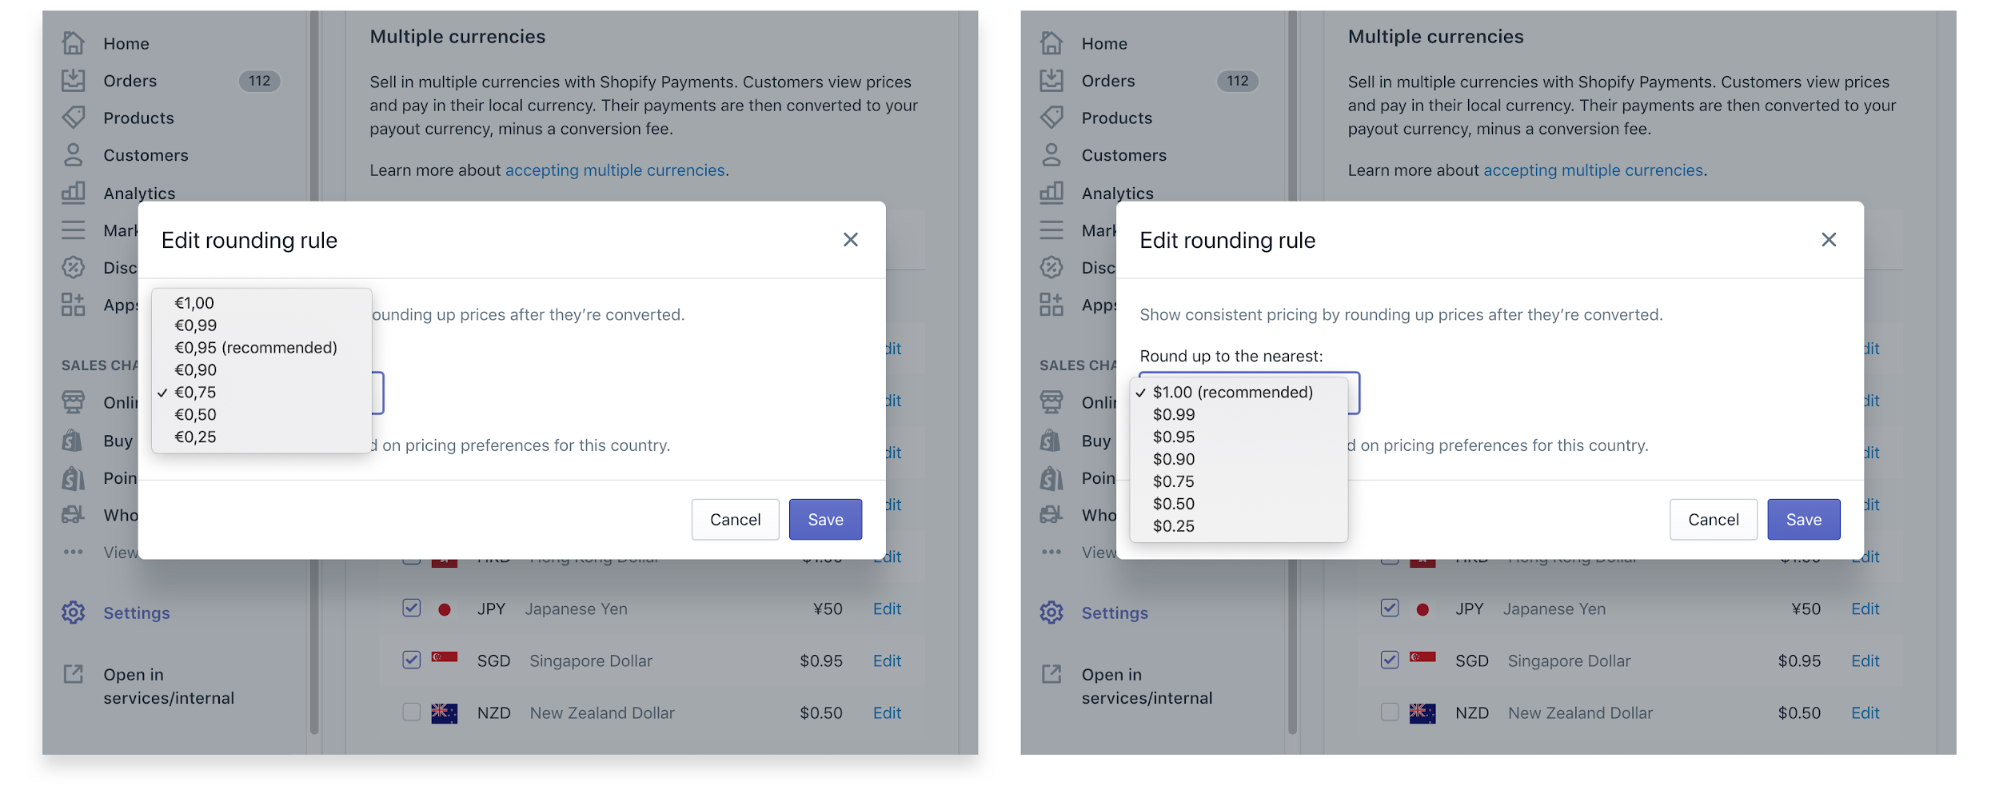 Editing rounding rules for Shopify Payments multi-currency